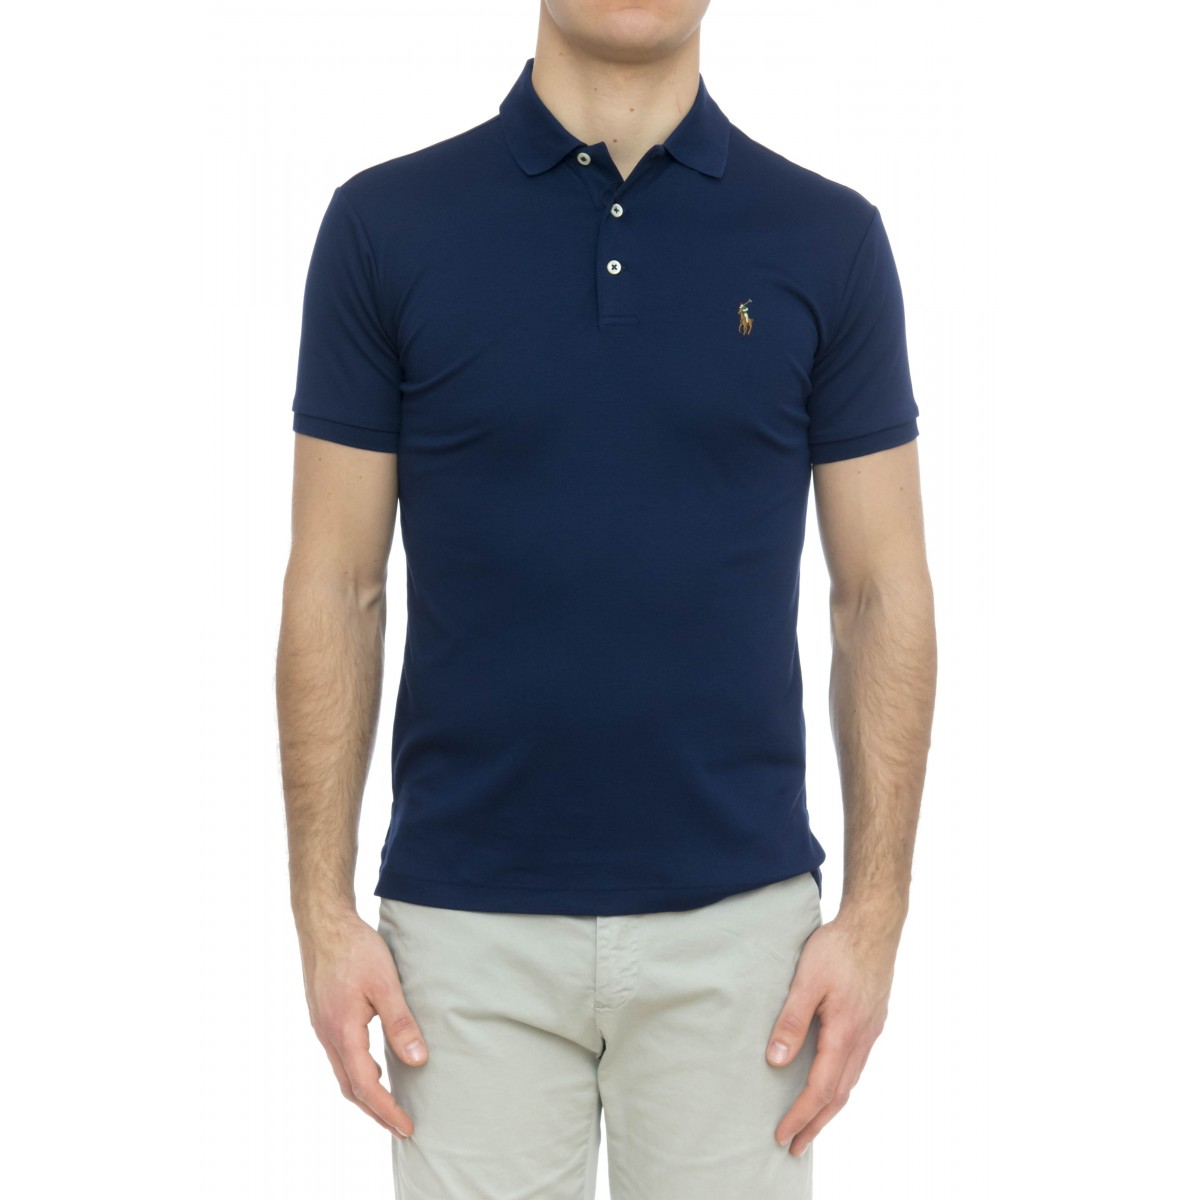 Polo - 652578 polo slim pima cotton